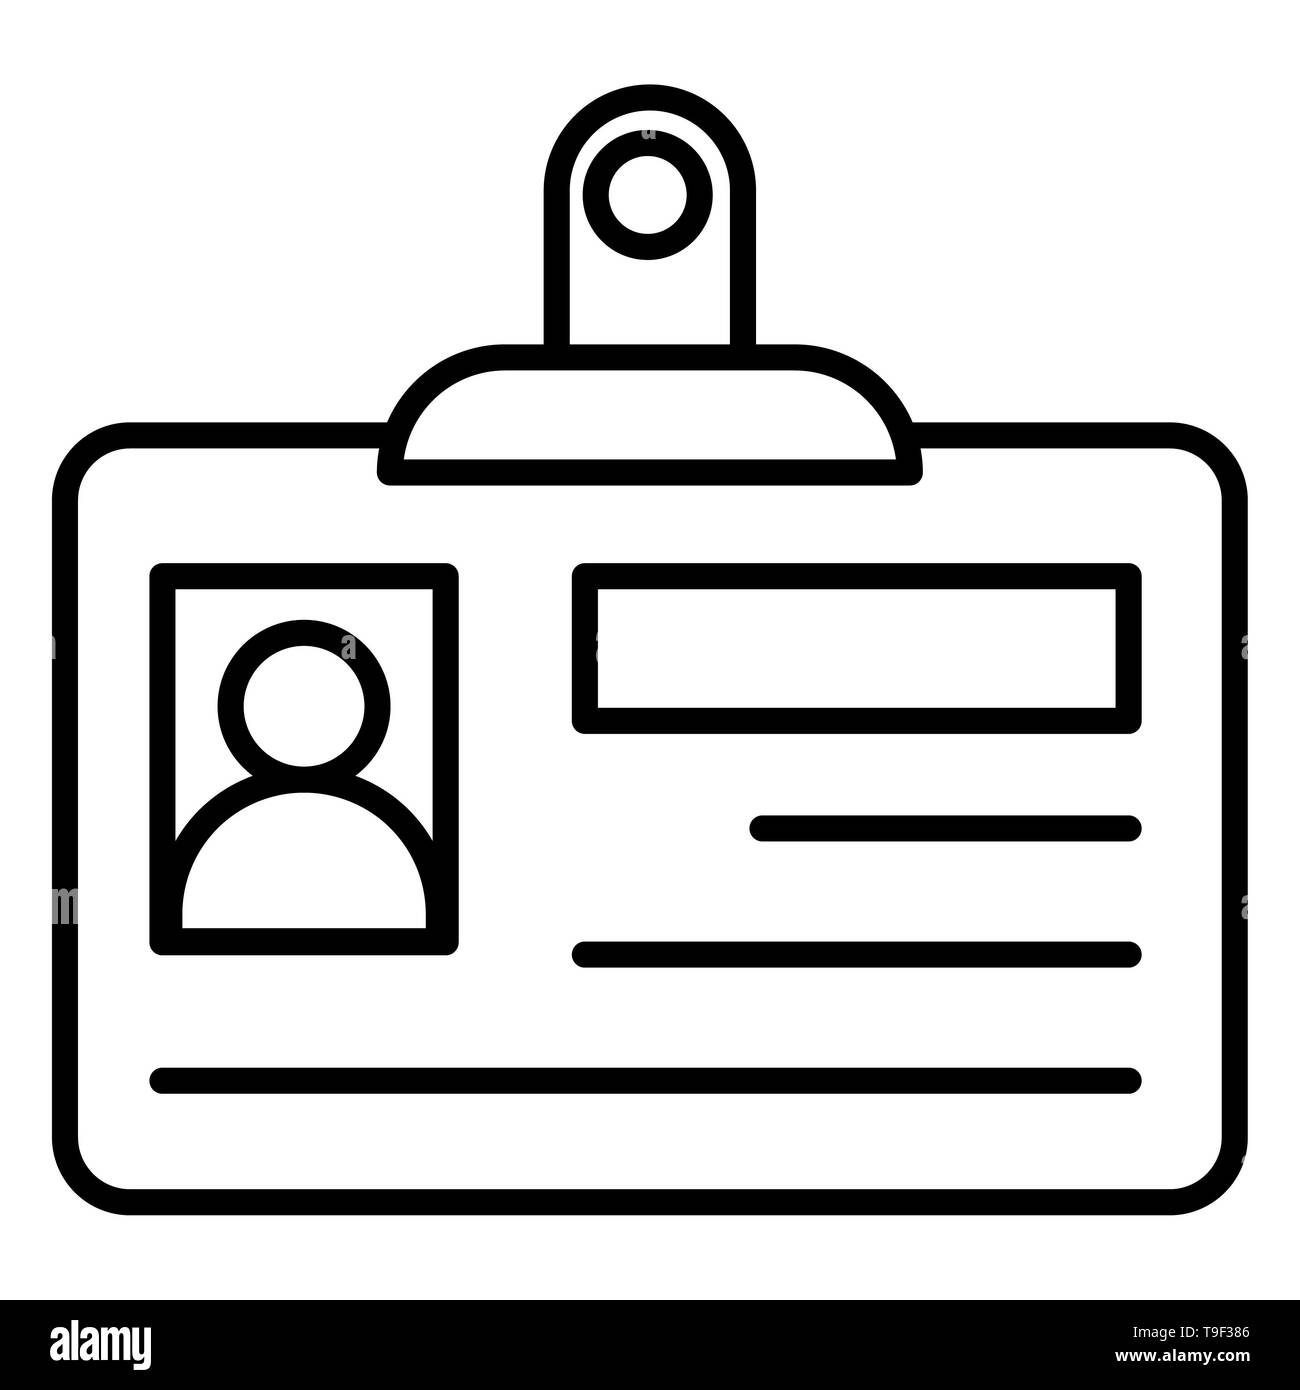 identity card icon vector illustration business outline stock photo alamy https www alamy com identity card icon vector illustration business outline image246808918 html